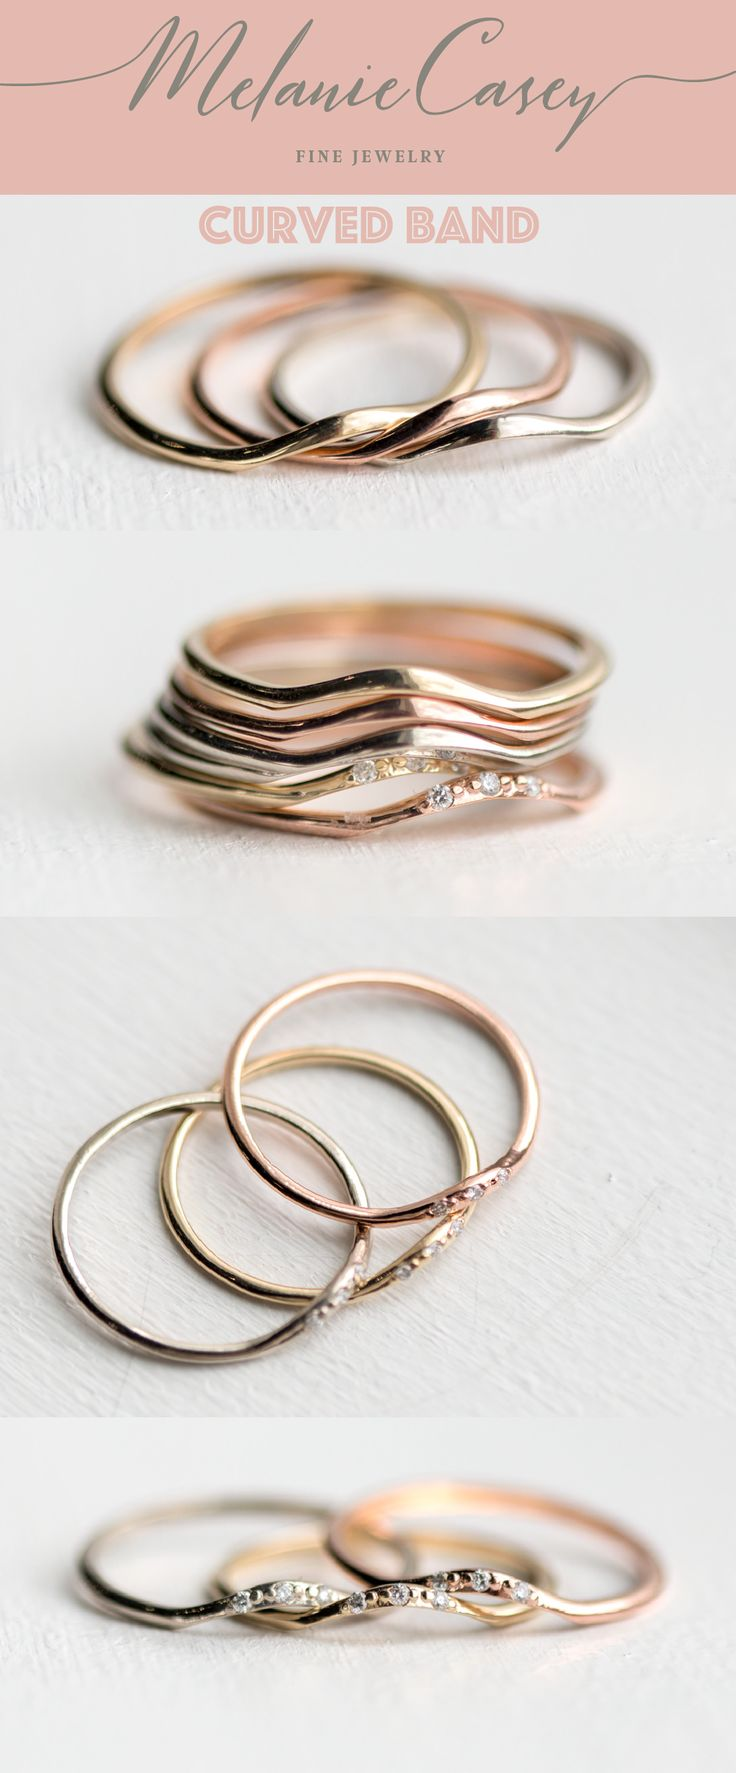 wedding ring, antique ring, vintage ring, whimsy ring, whimsical ring, dainty ring, feminine ring, elegant ring, gold ring, white diamond ring, delicate ring, handmade ring, stunning ring, stacking ring, Melanie Casey ring, perfect ring, vintage jewelry, antique ring, vintage inspired ring, antique inspired ring, fairytale ring, magical ring, handmade jewelry, jewelry made in the USA, made with love, diamond curved band, diamond band, rose gold band, curved band, wedding band